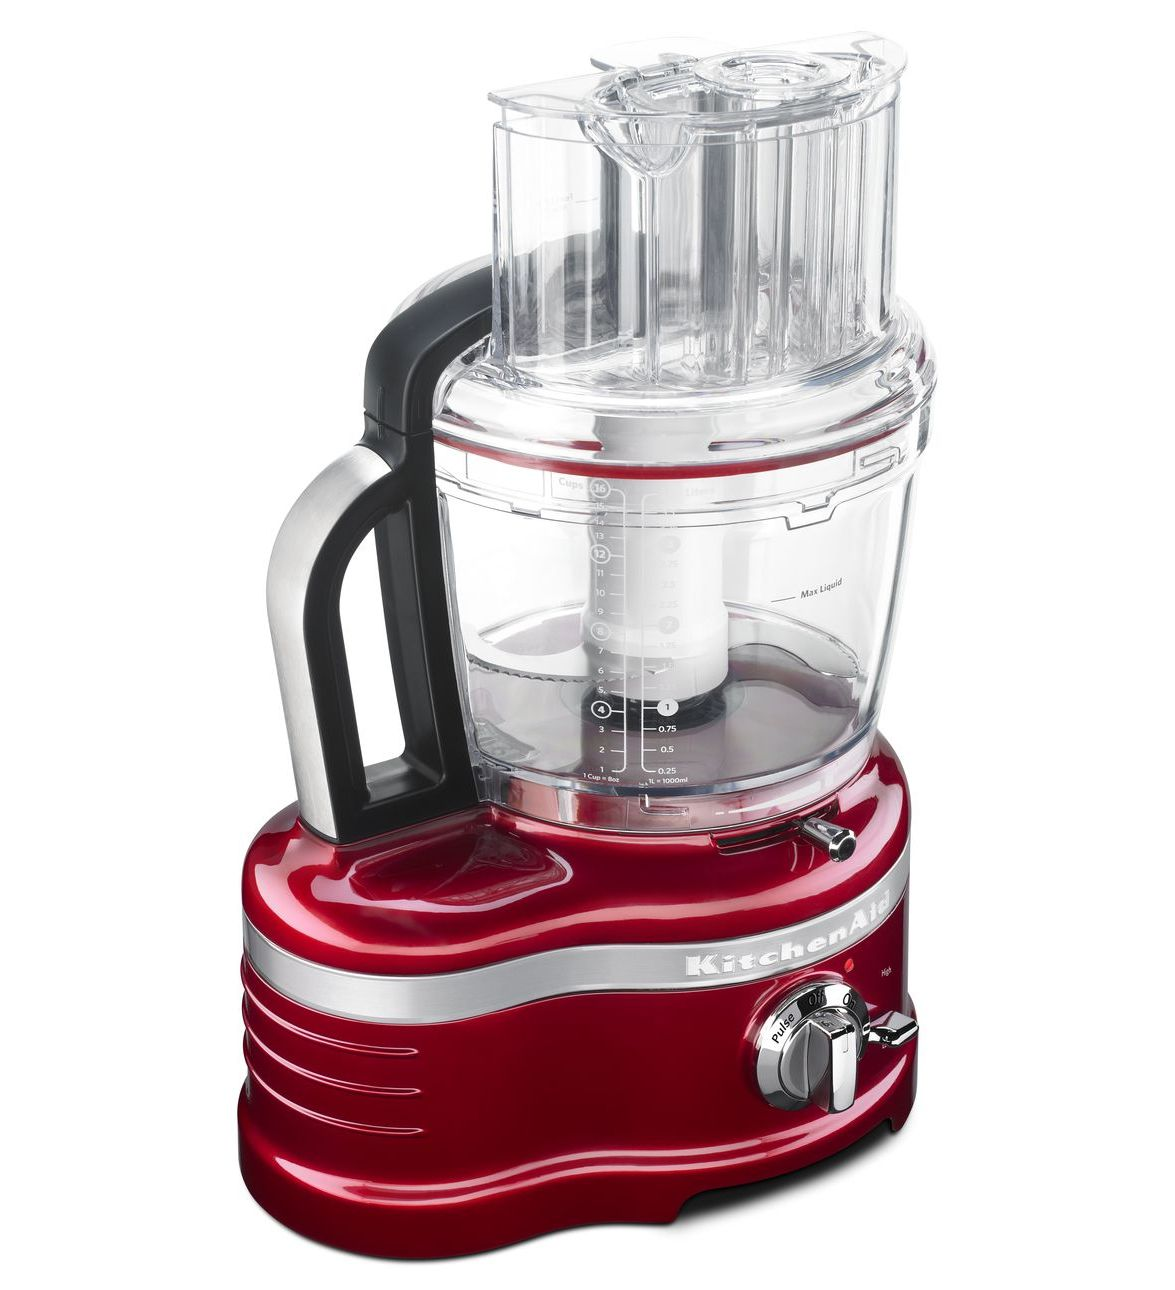 Kitchenaid Proline 16 Cup Food Processor Candy Apple Red